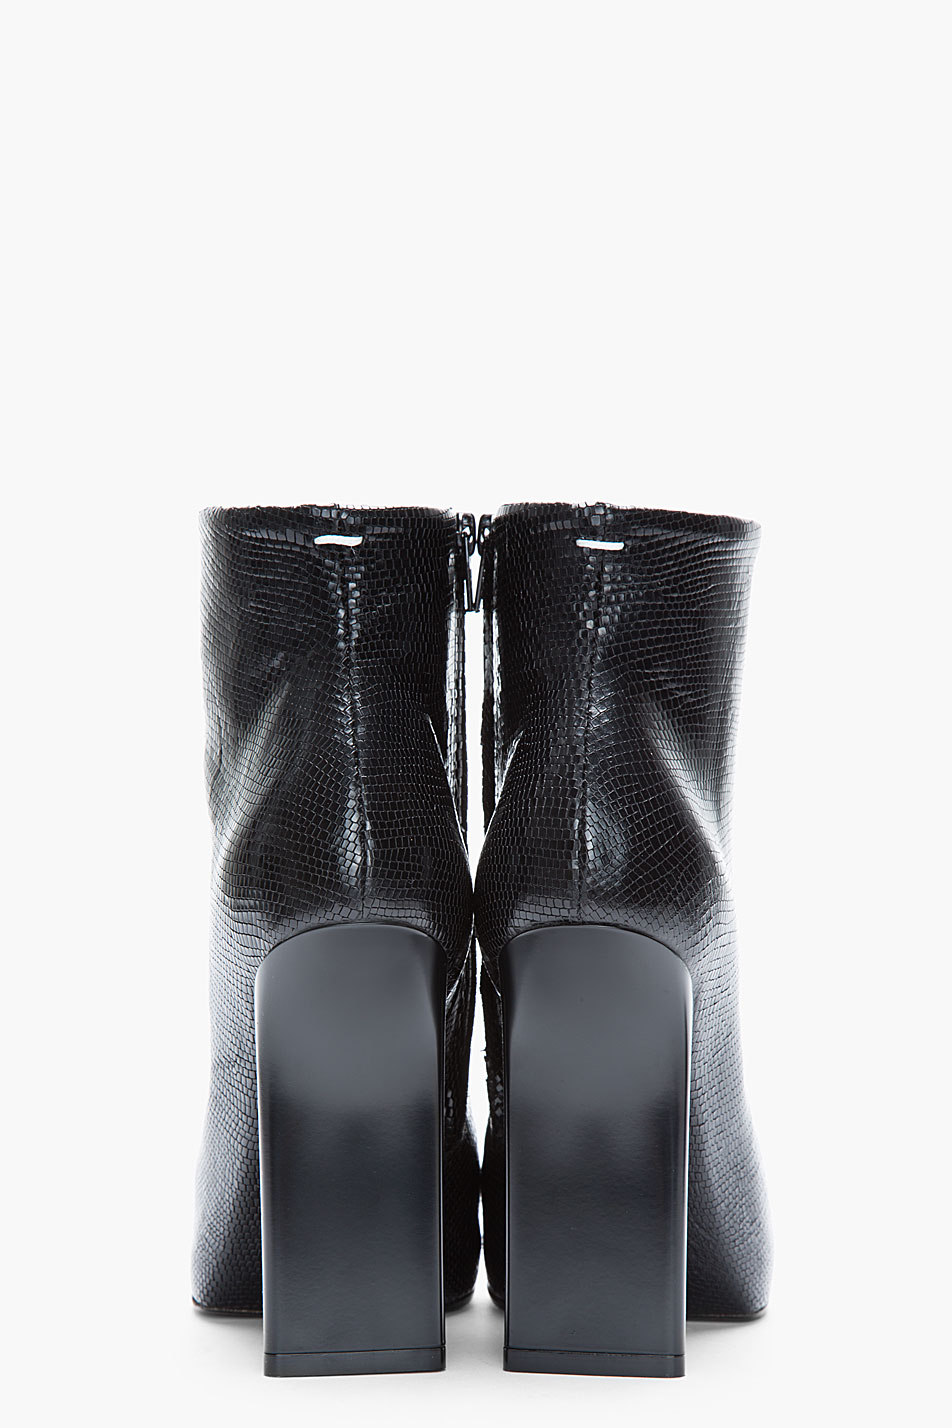 Maison Margiela Leather Ankle Boots In Black Lyst